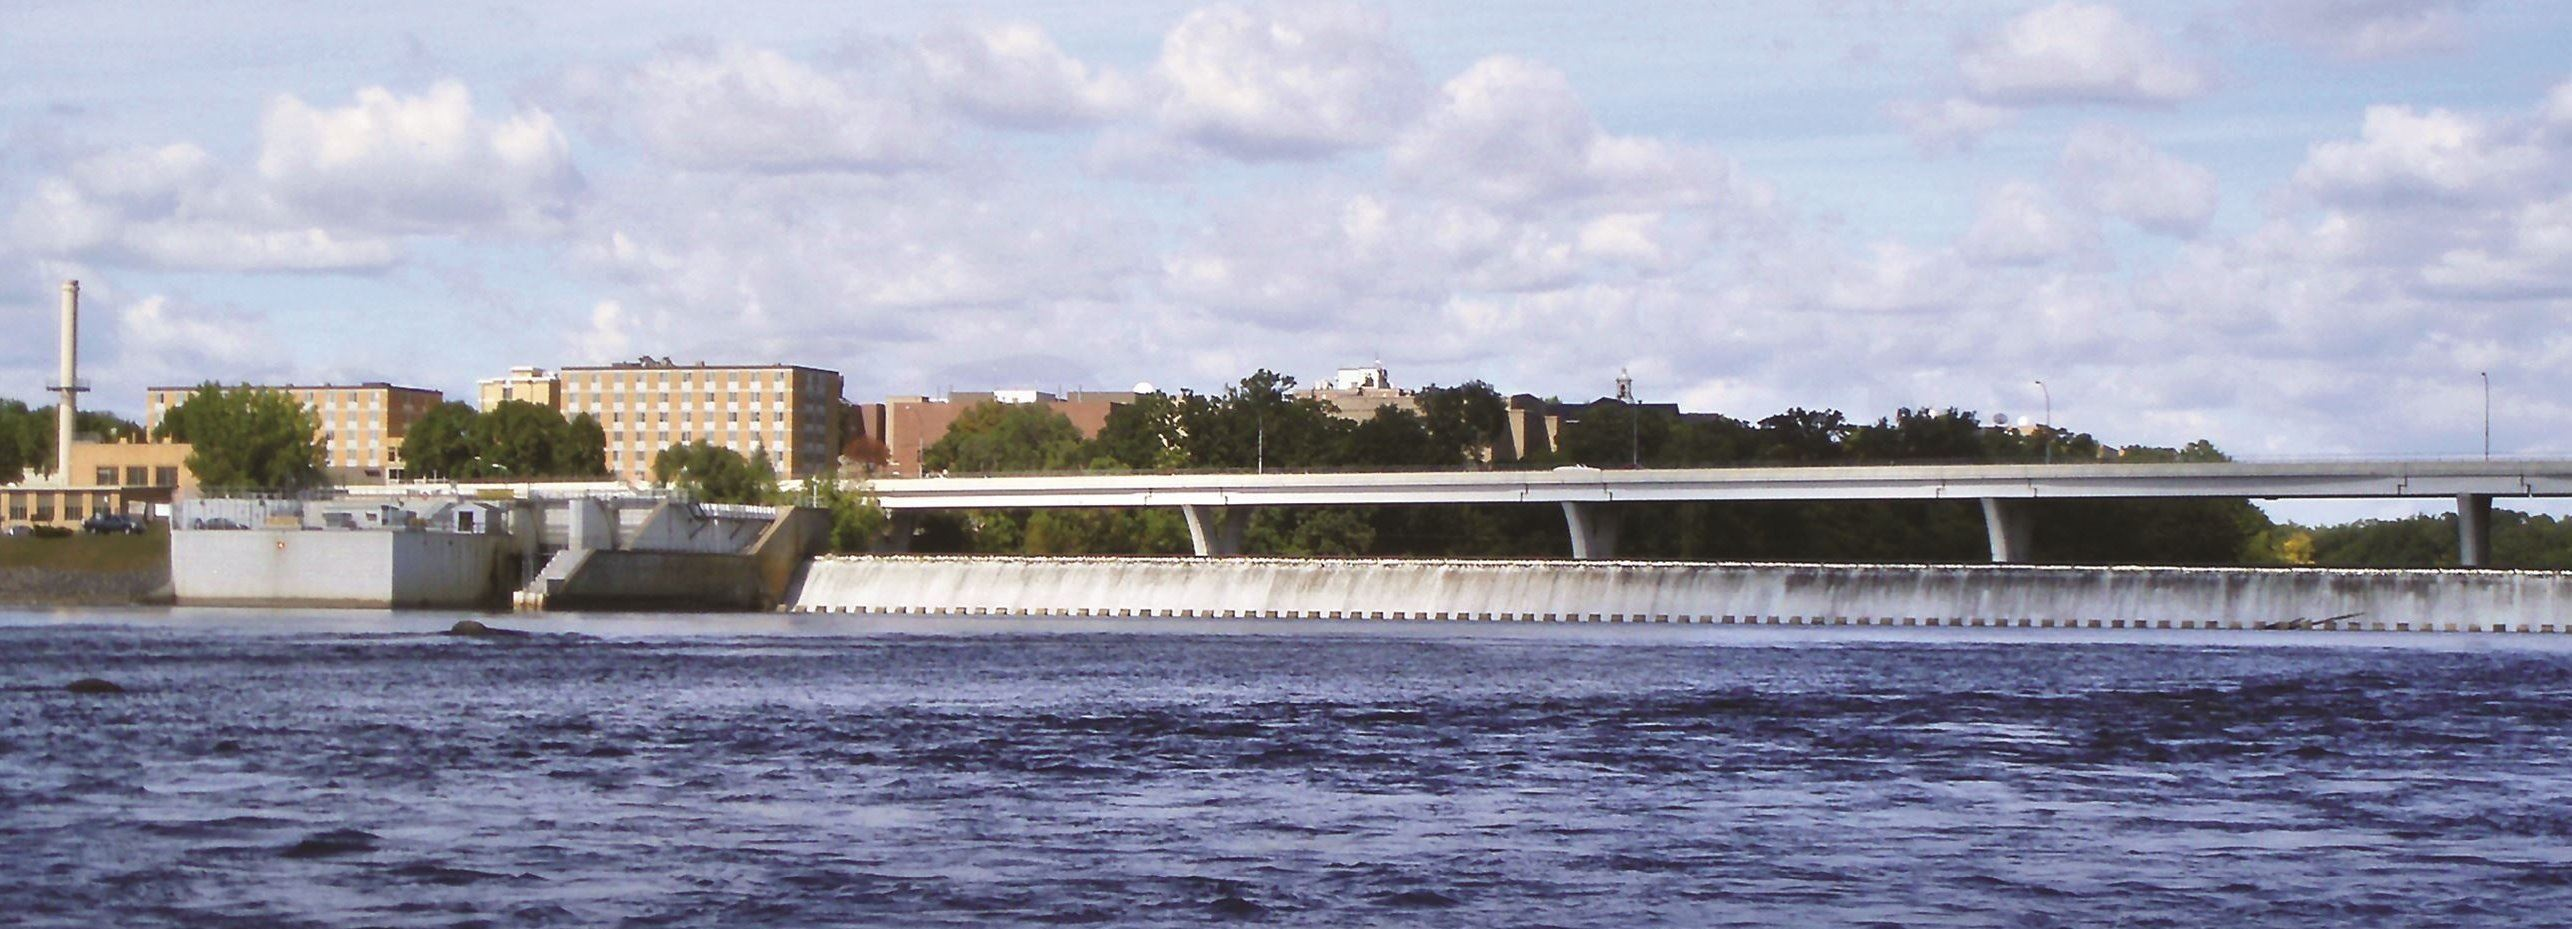 St Cloud Hydroelectric Dam and Mississippi River